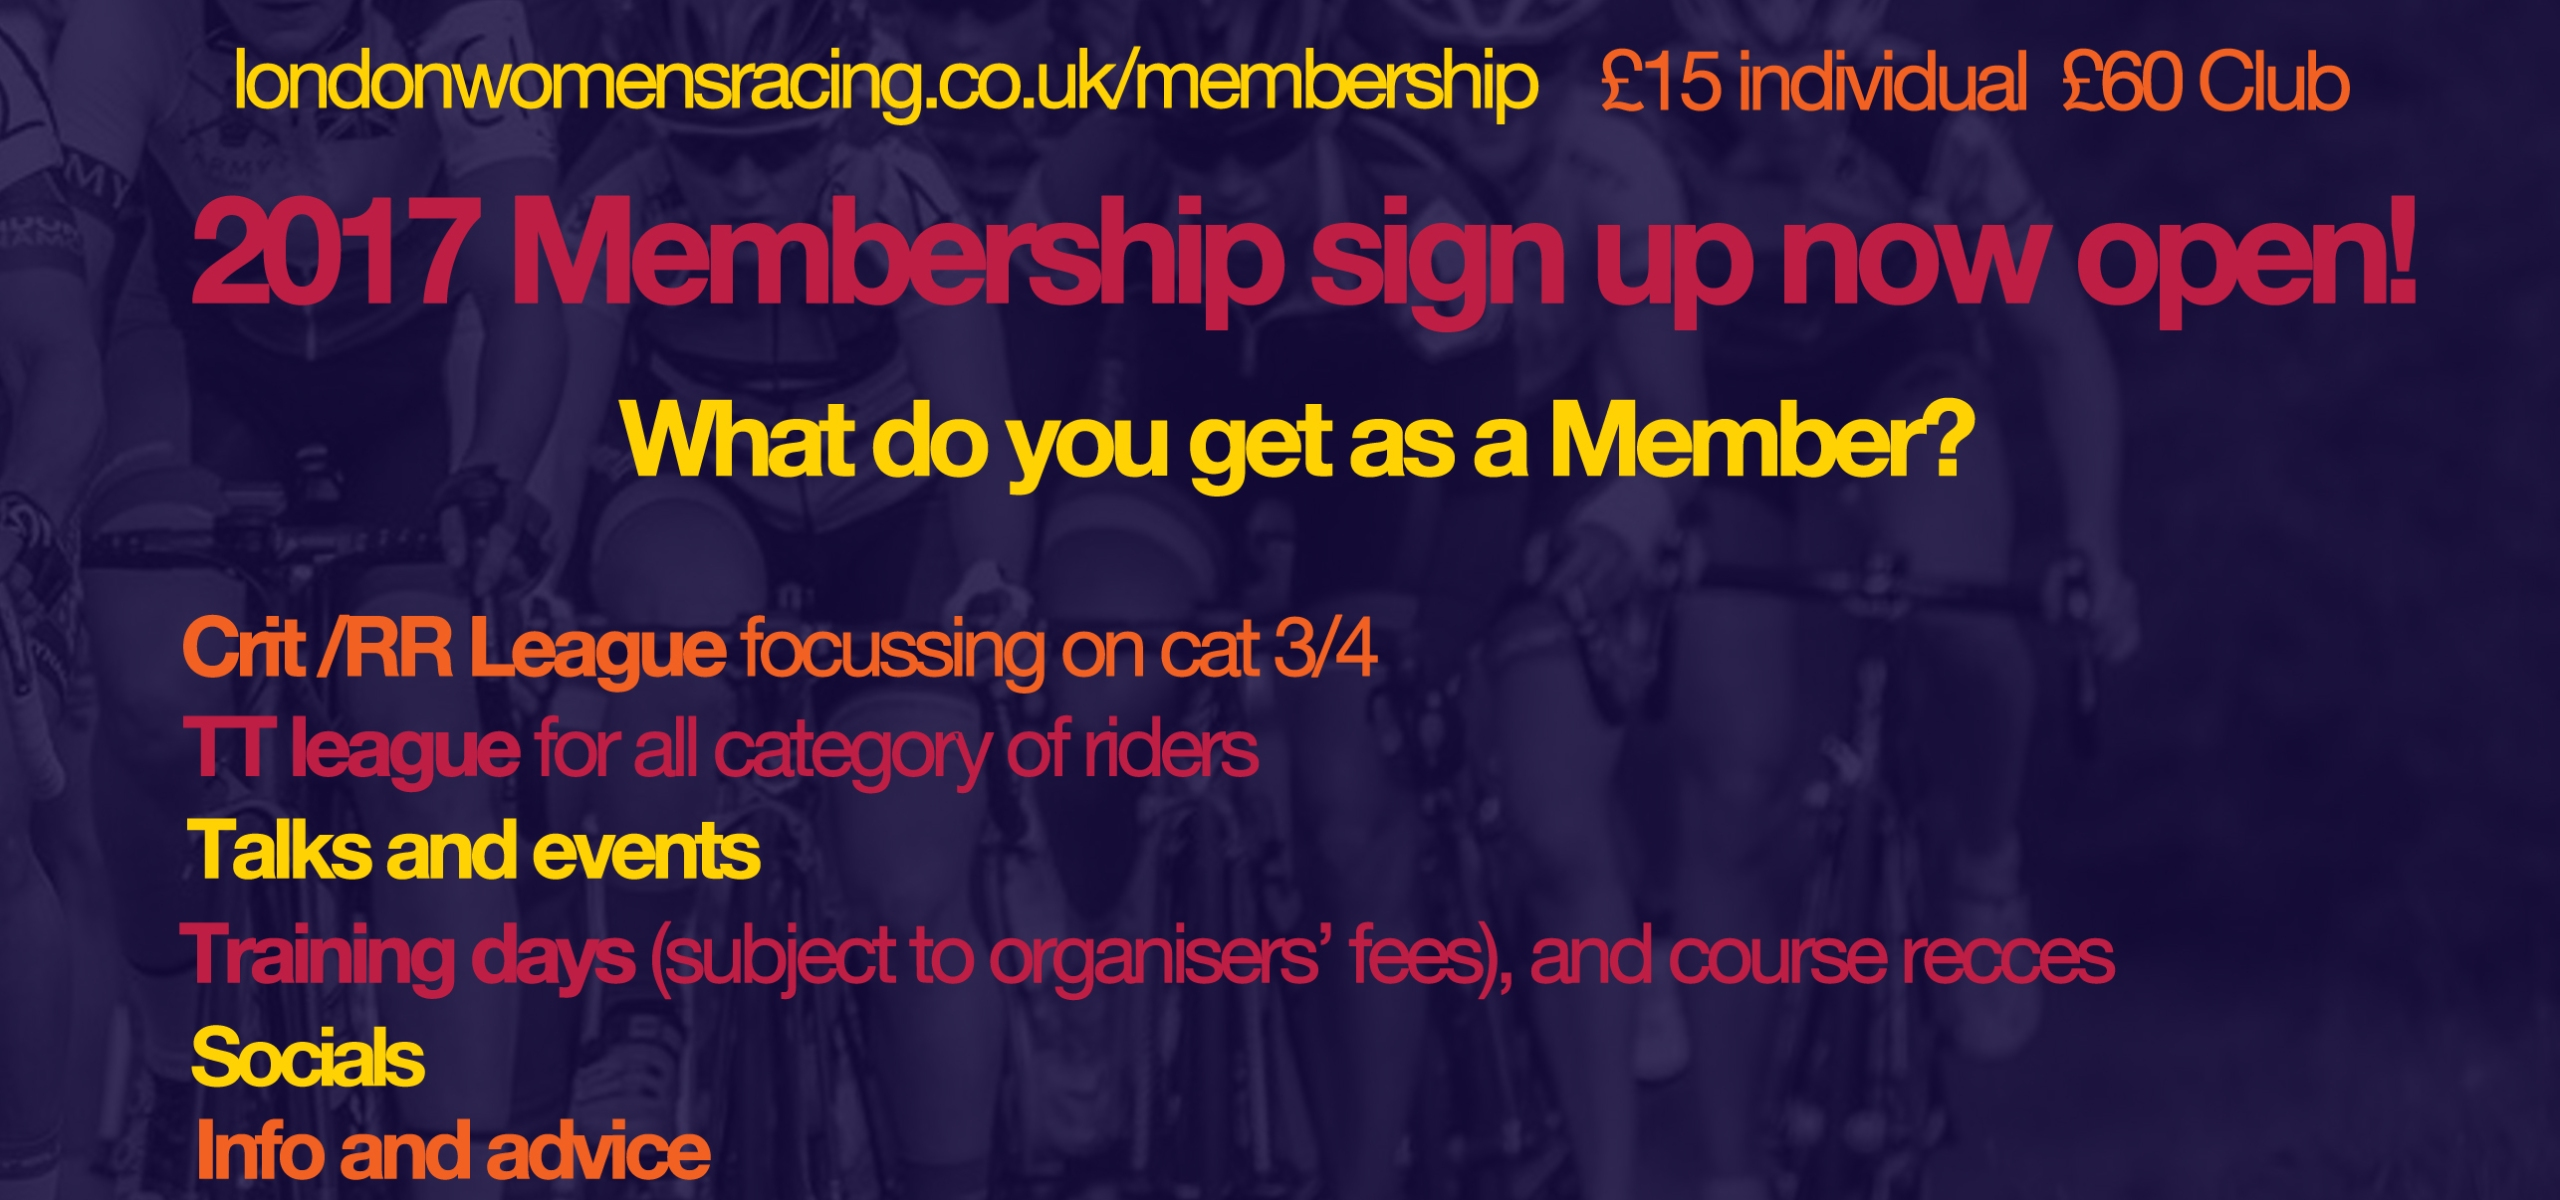 London womens racing membership graphic listing membership benefits - same as those listed in the article.